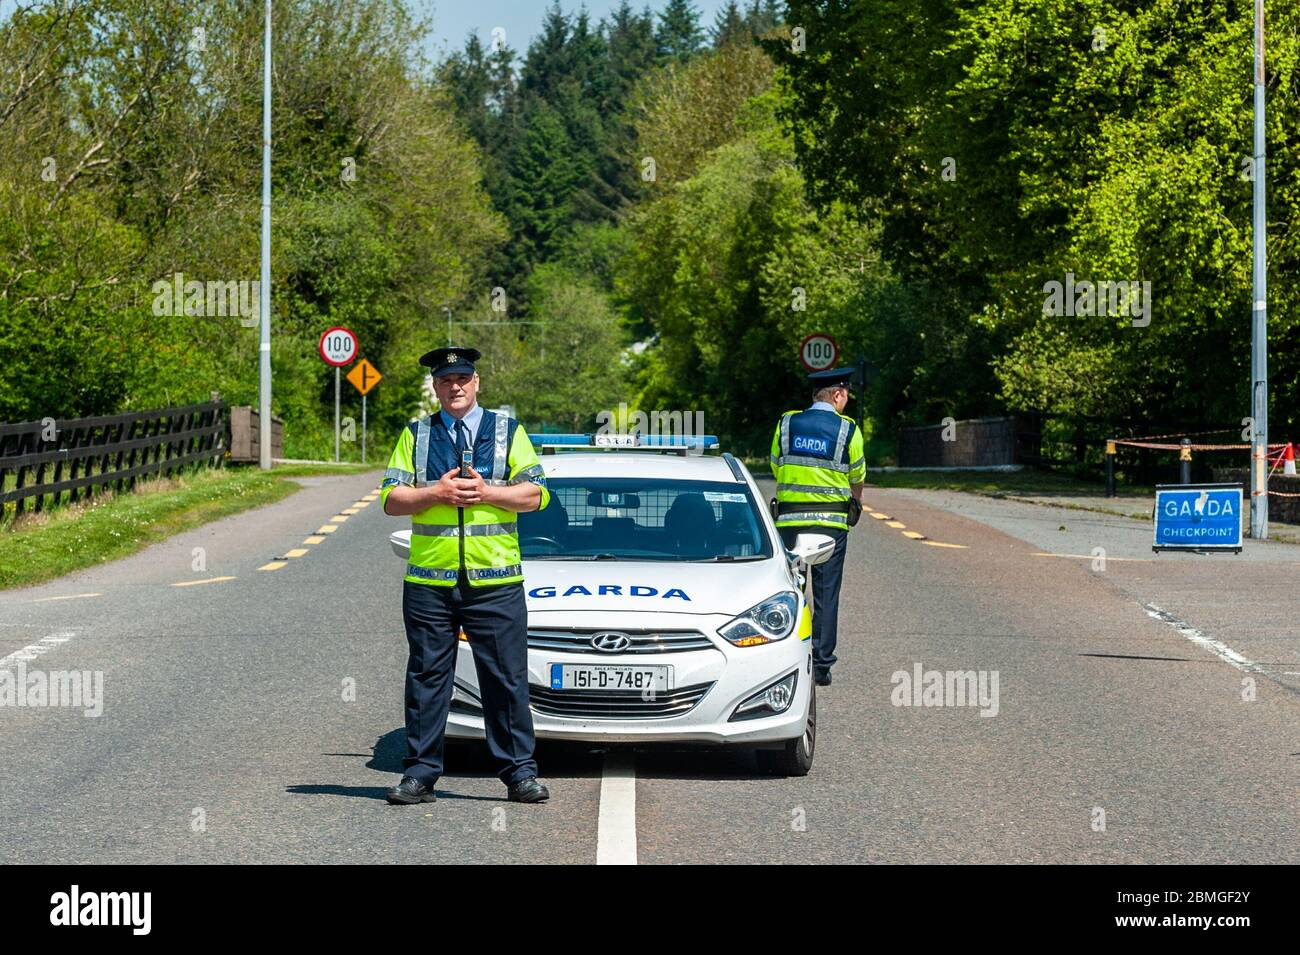 ballinascarthy-west-cork-ireland-9th-may-2020-a-garda-checkpoint-was-in-place-on-the-n71-at-ballinascarthy-today-to-ensure-motorists-were-only-making-essential-journeys-in-accordance-with-the-governments-covid-19-regulations-credit-ag-newsalamy-live-news-2BMGF2Y.jpg